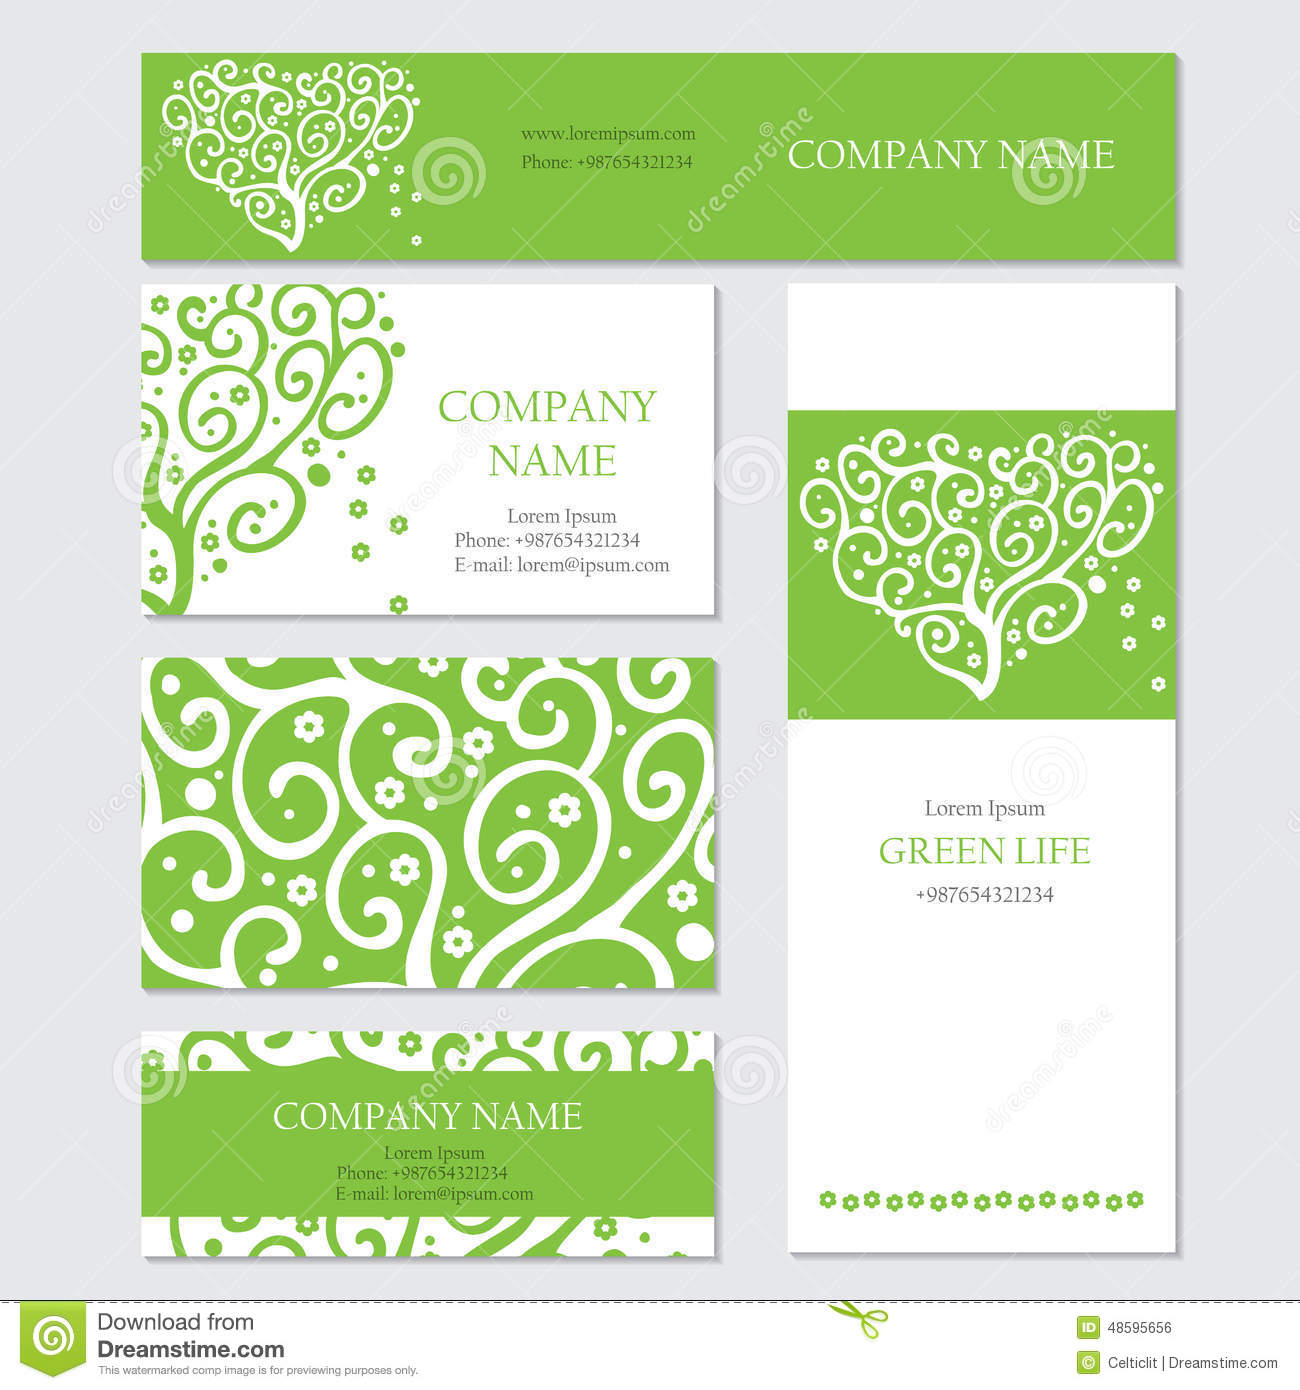 doc corporate invitation cards best ideas about set of business or invitation cards templates vector corporate invitation cards